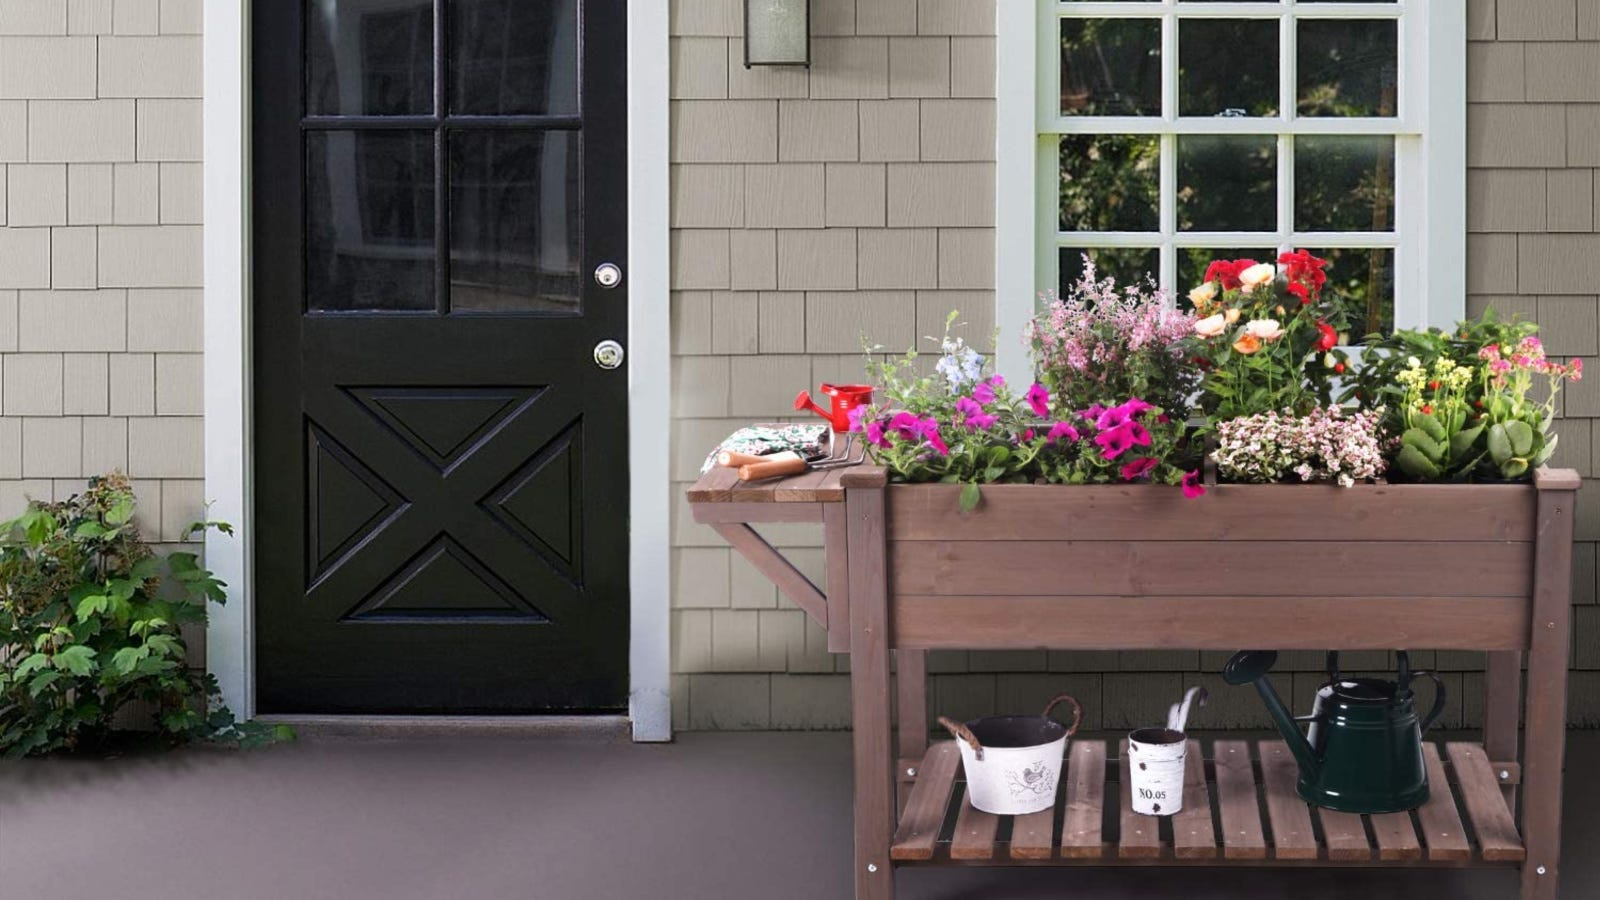 A lovely brown wooden raised garden bed filled with colorful flowers with decorative planters on the bottom shelf and gardening tools place don the side tray, displayed on a patio of a home.